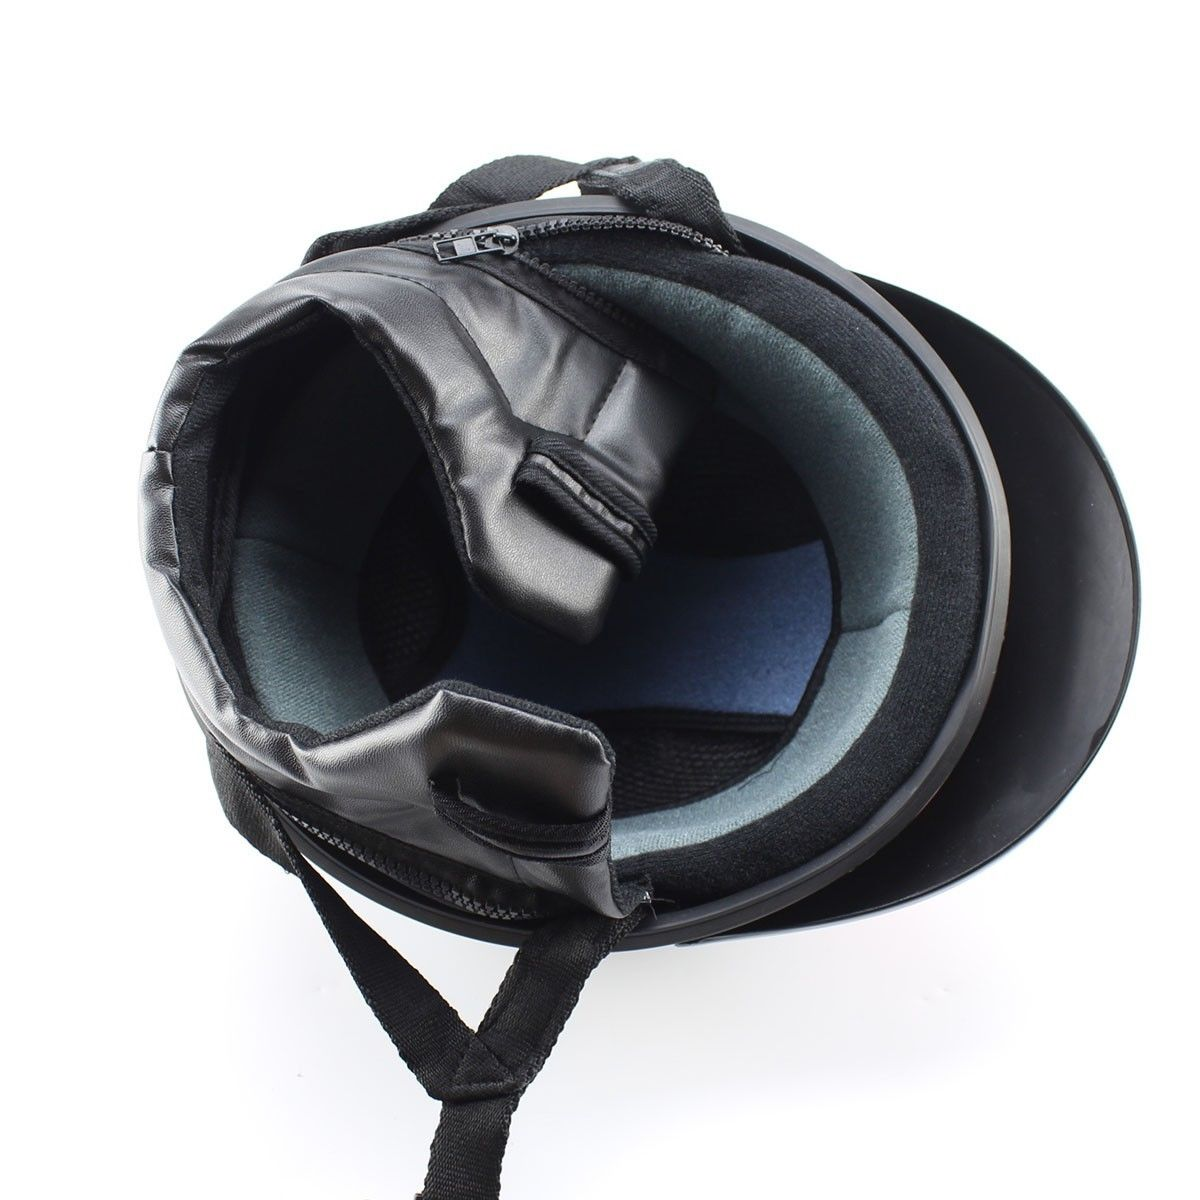 casque bol demi jet simili cuir noir bleu style r tro vintage solex mobylette motob cane. Black Bedroom Furniture Sets. Home Design Ideas